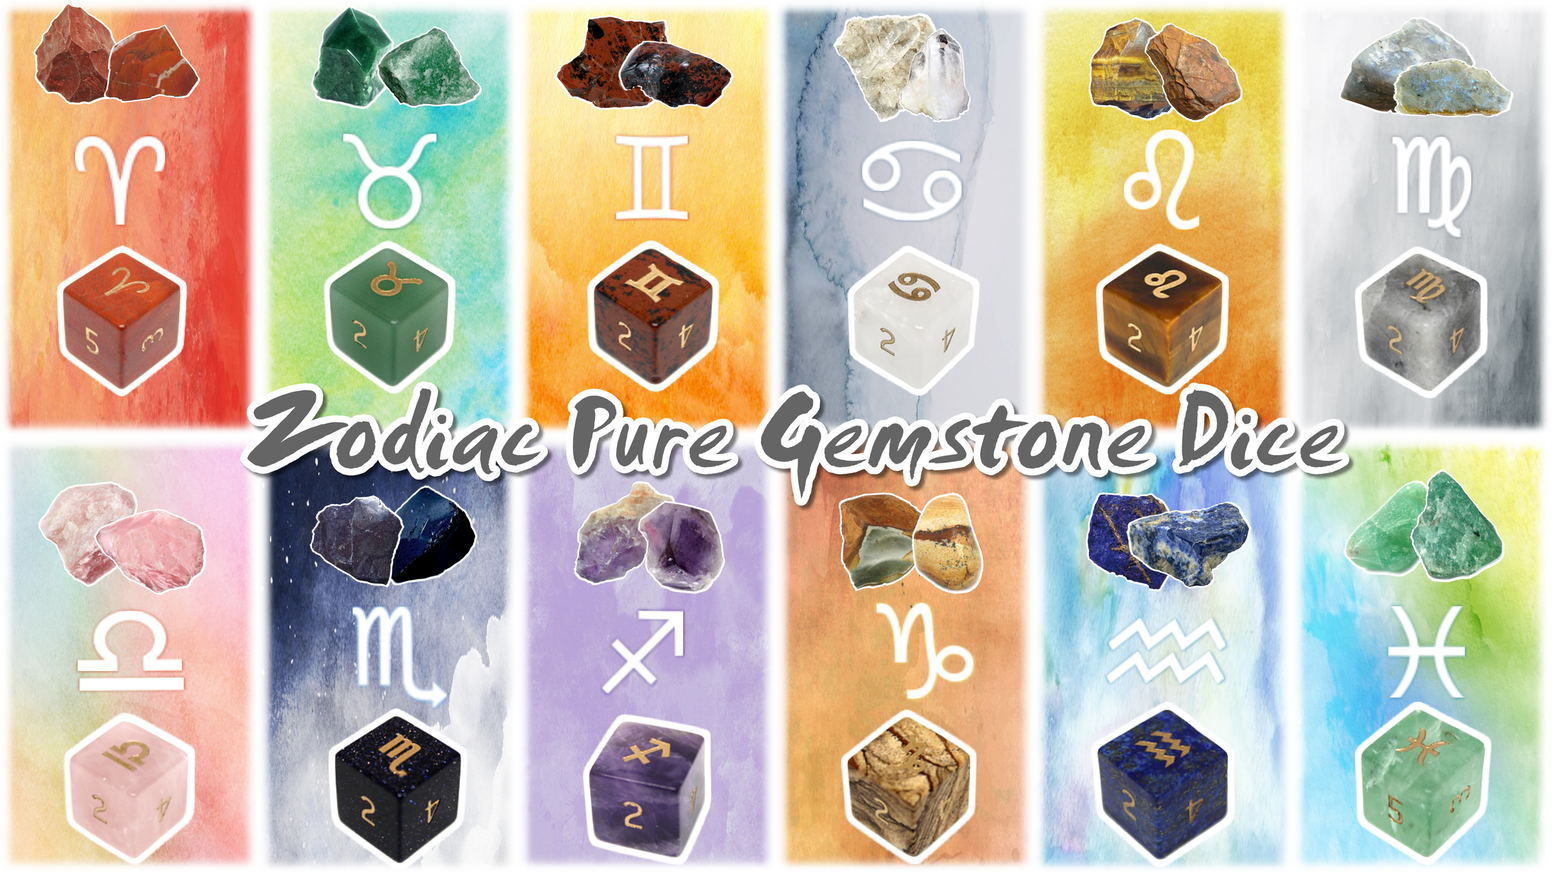 Gemstone d6 dice with Zodiac symbols engraved into them. For collections, dungeons and dragons, board games, tabletop games, and more!